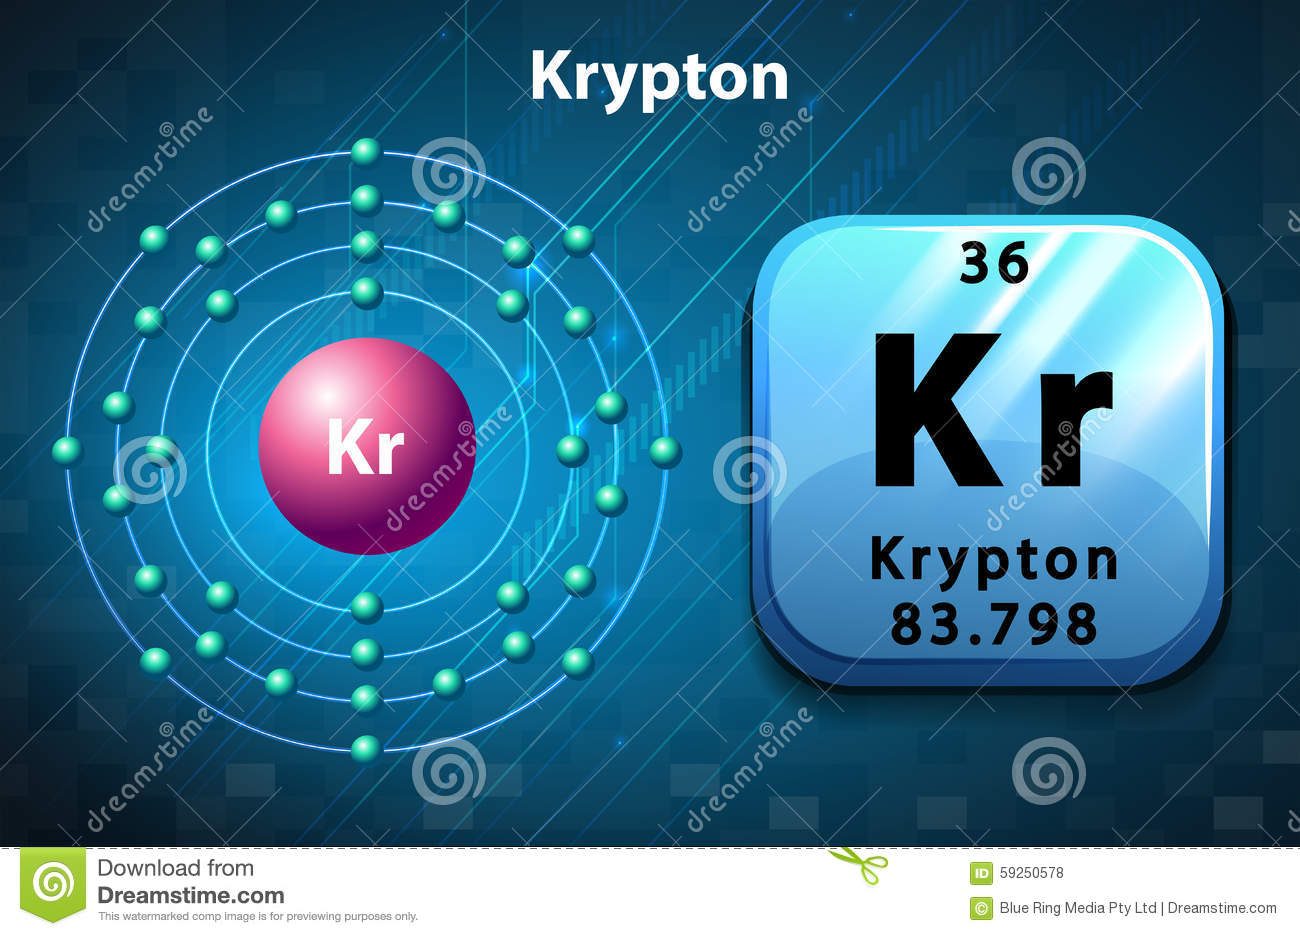 Krypton symbol and electron diagram krypton stock vector krypton symbol and electron diagram krypton buycottarizona